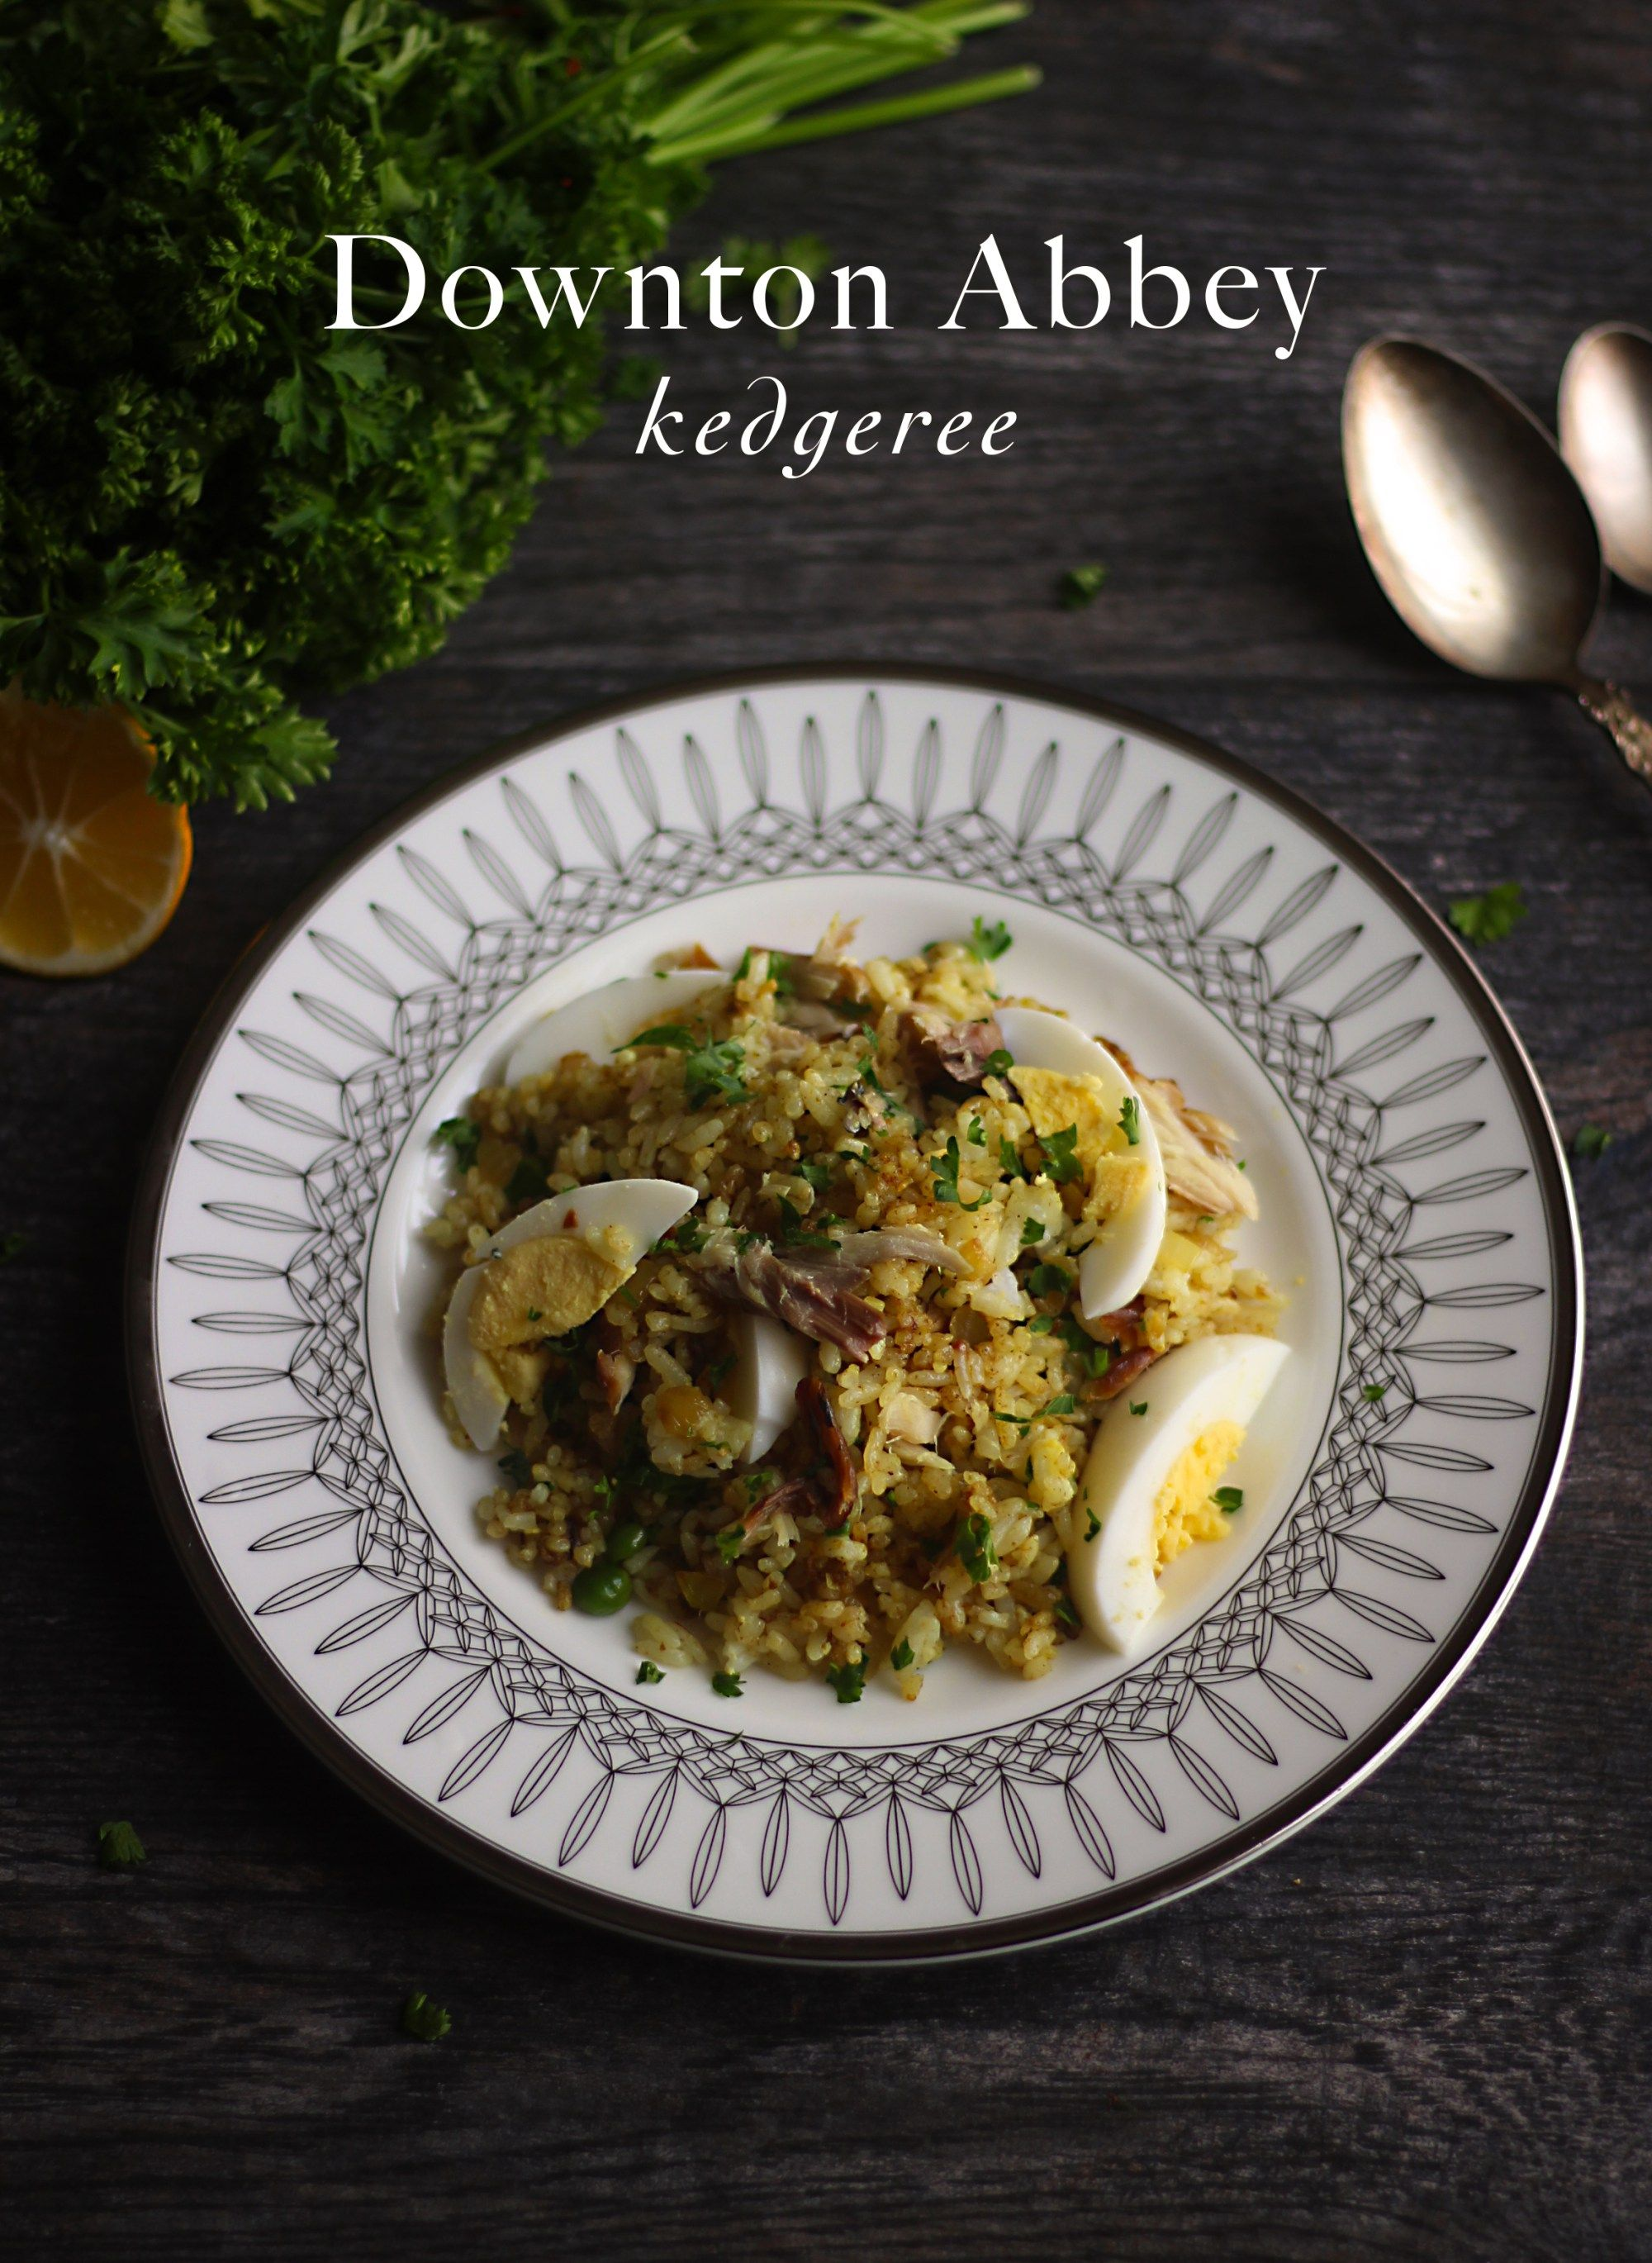 Recipe on how to make kedgeree from mrs patmore in downton abbey recipe forumfinder Choice Image